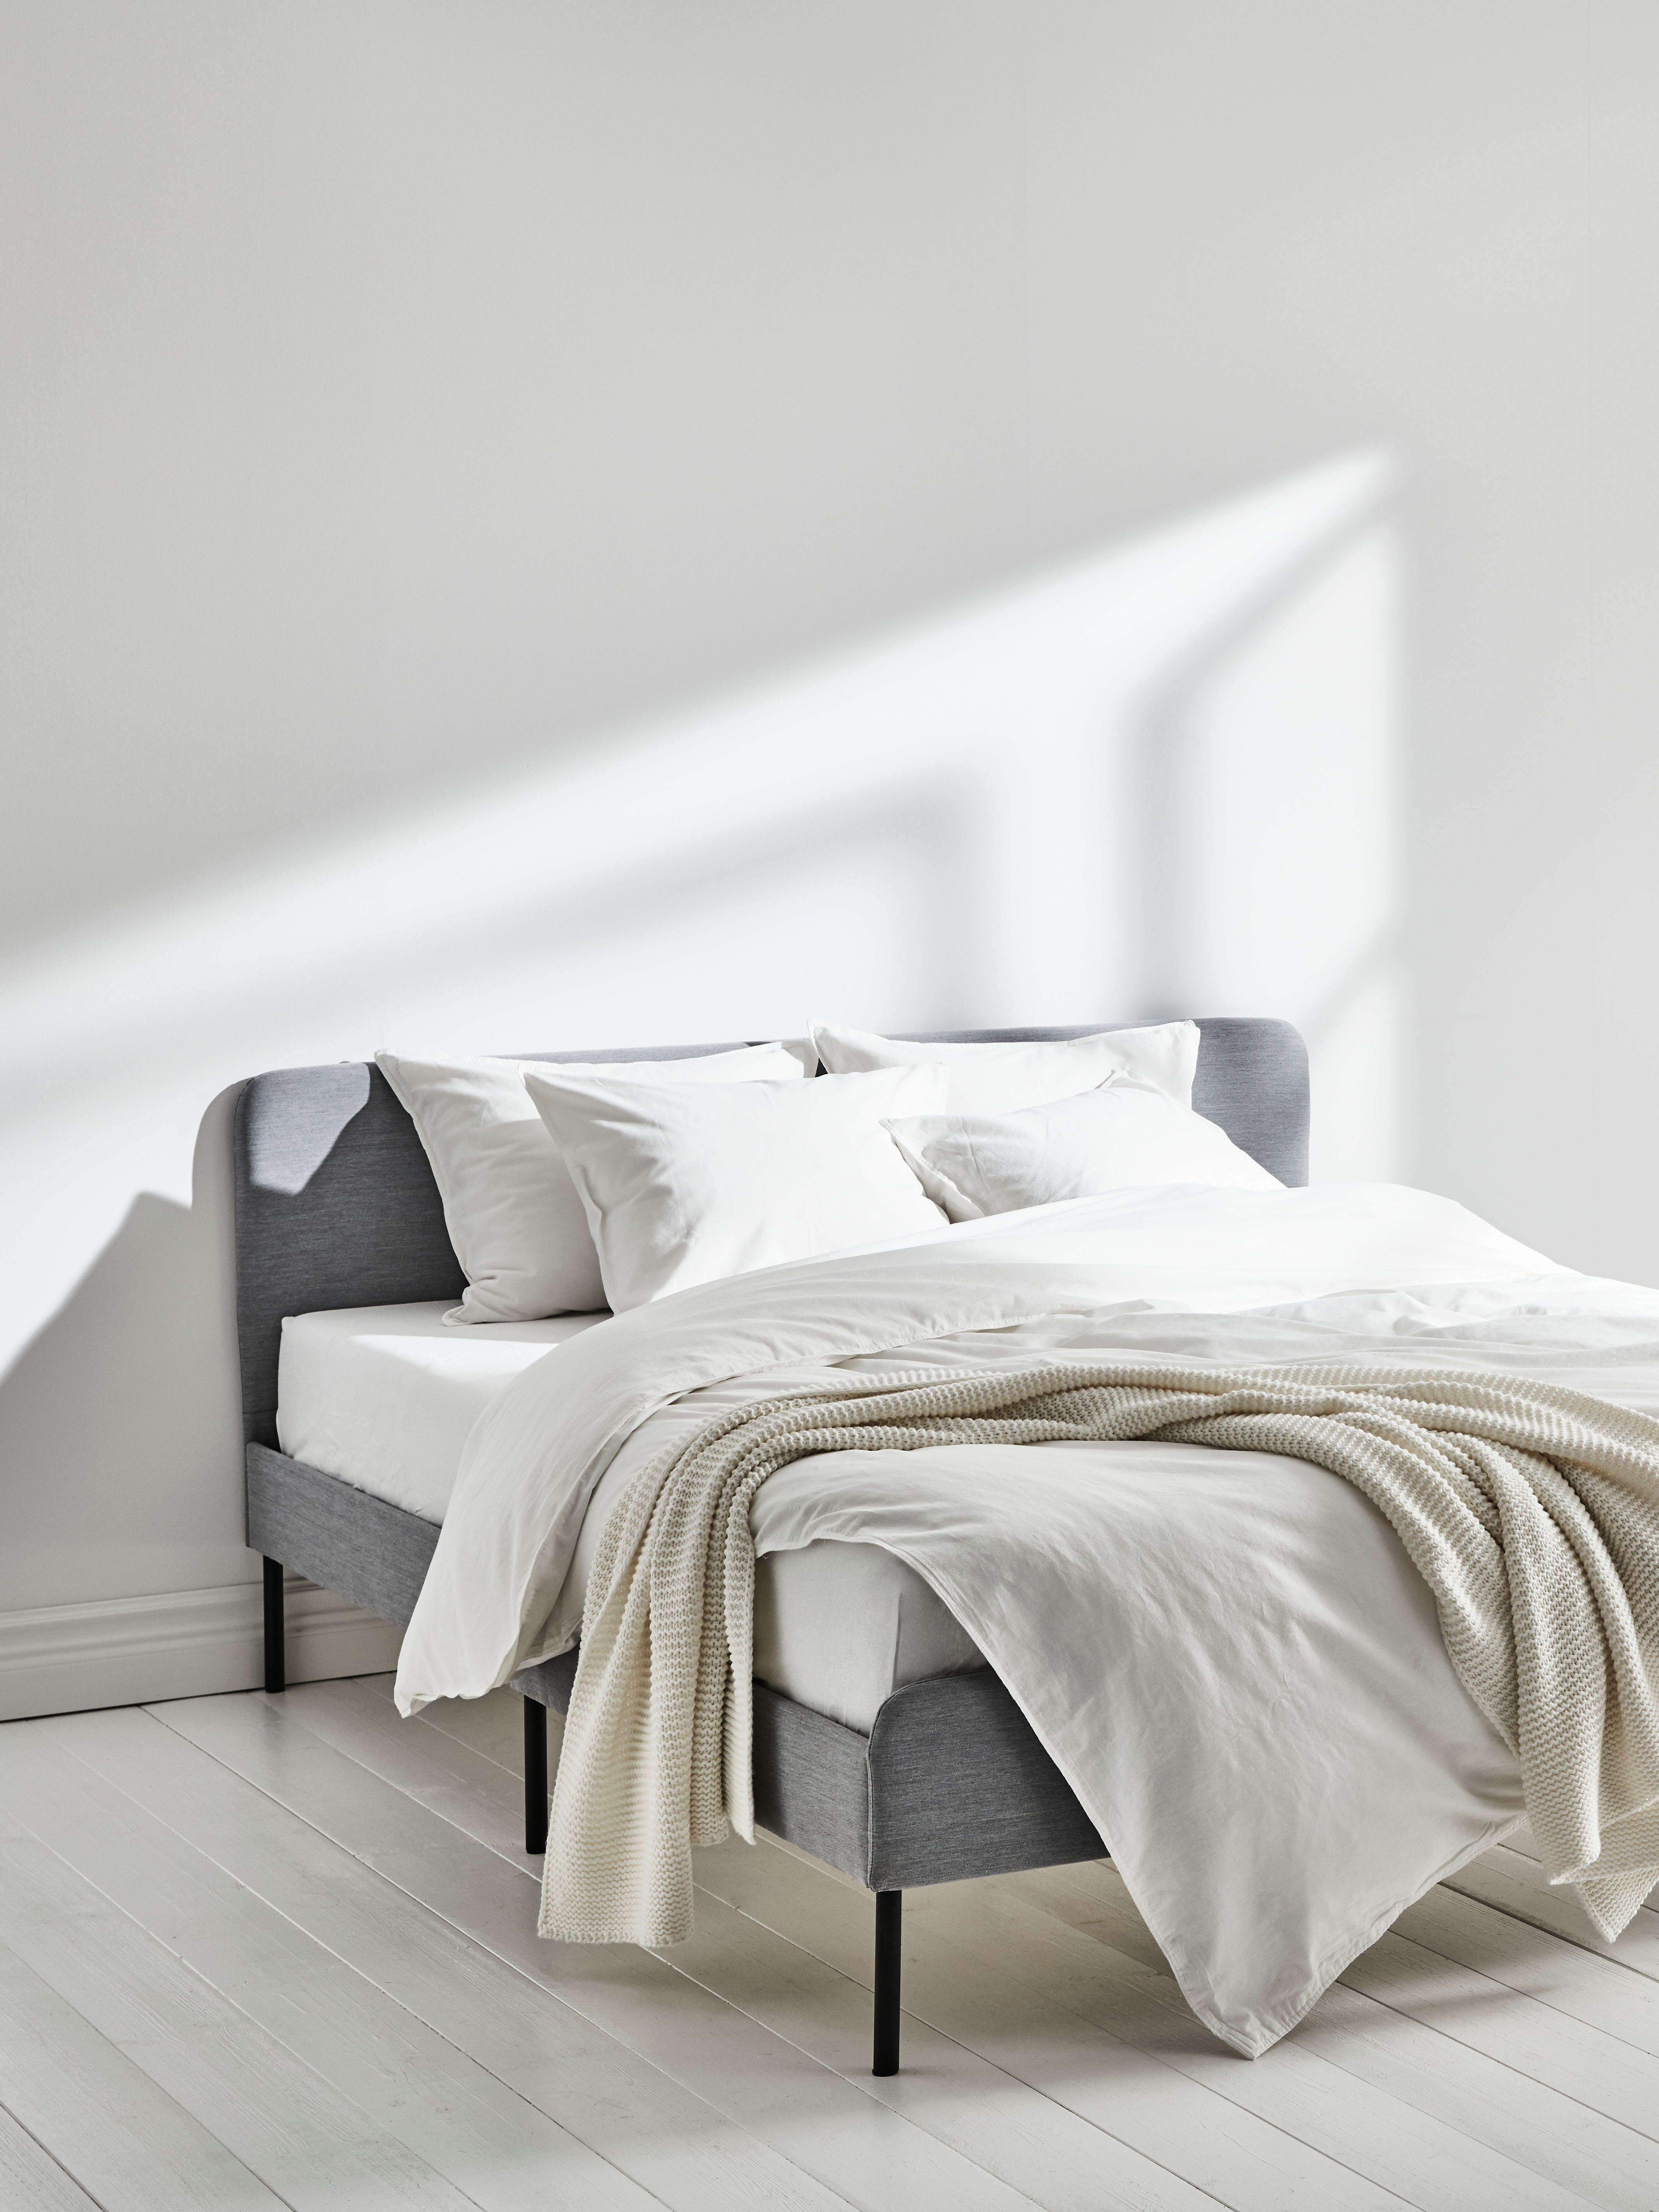 Bedroom with white wall, upholstered bed frame with white mattress, multiple pillows with quilt covers, and throw.